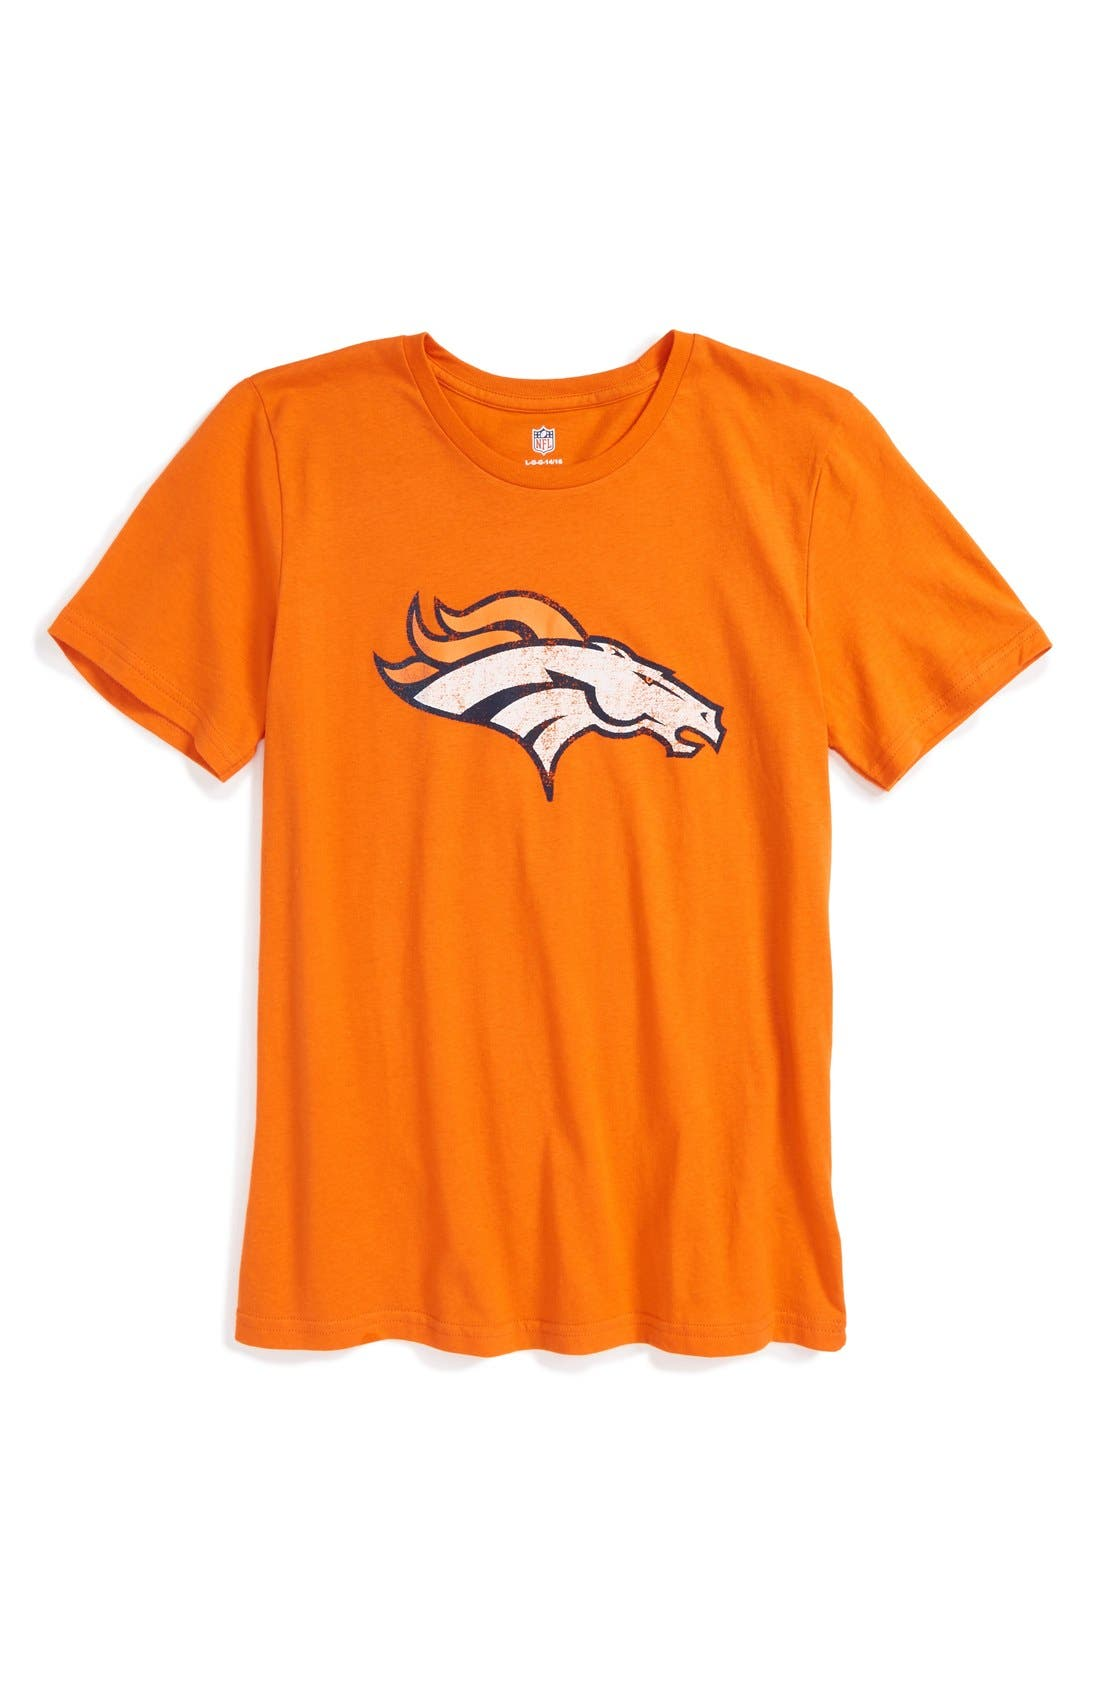 Outerstuff 'NFL - Denver Broncos' Distressed Logo Graphic T-Shirt (Toddler Boys, Little Boys & Big Boys)